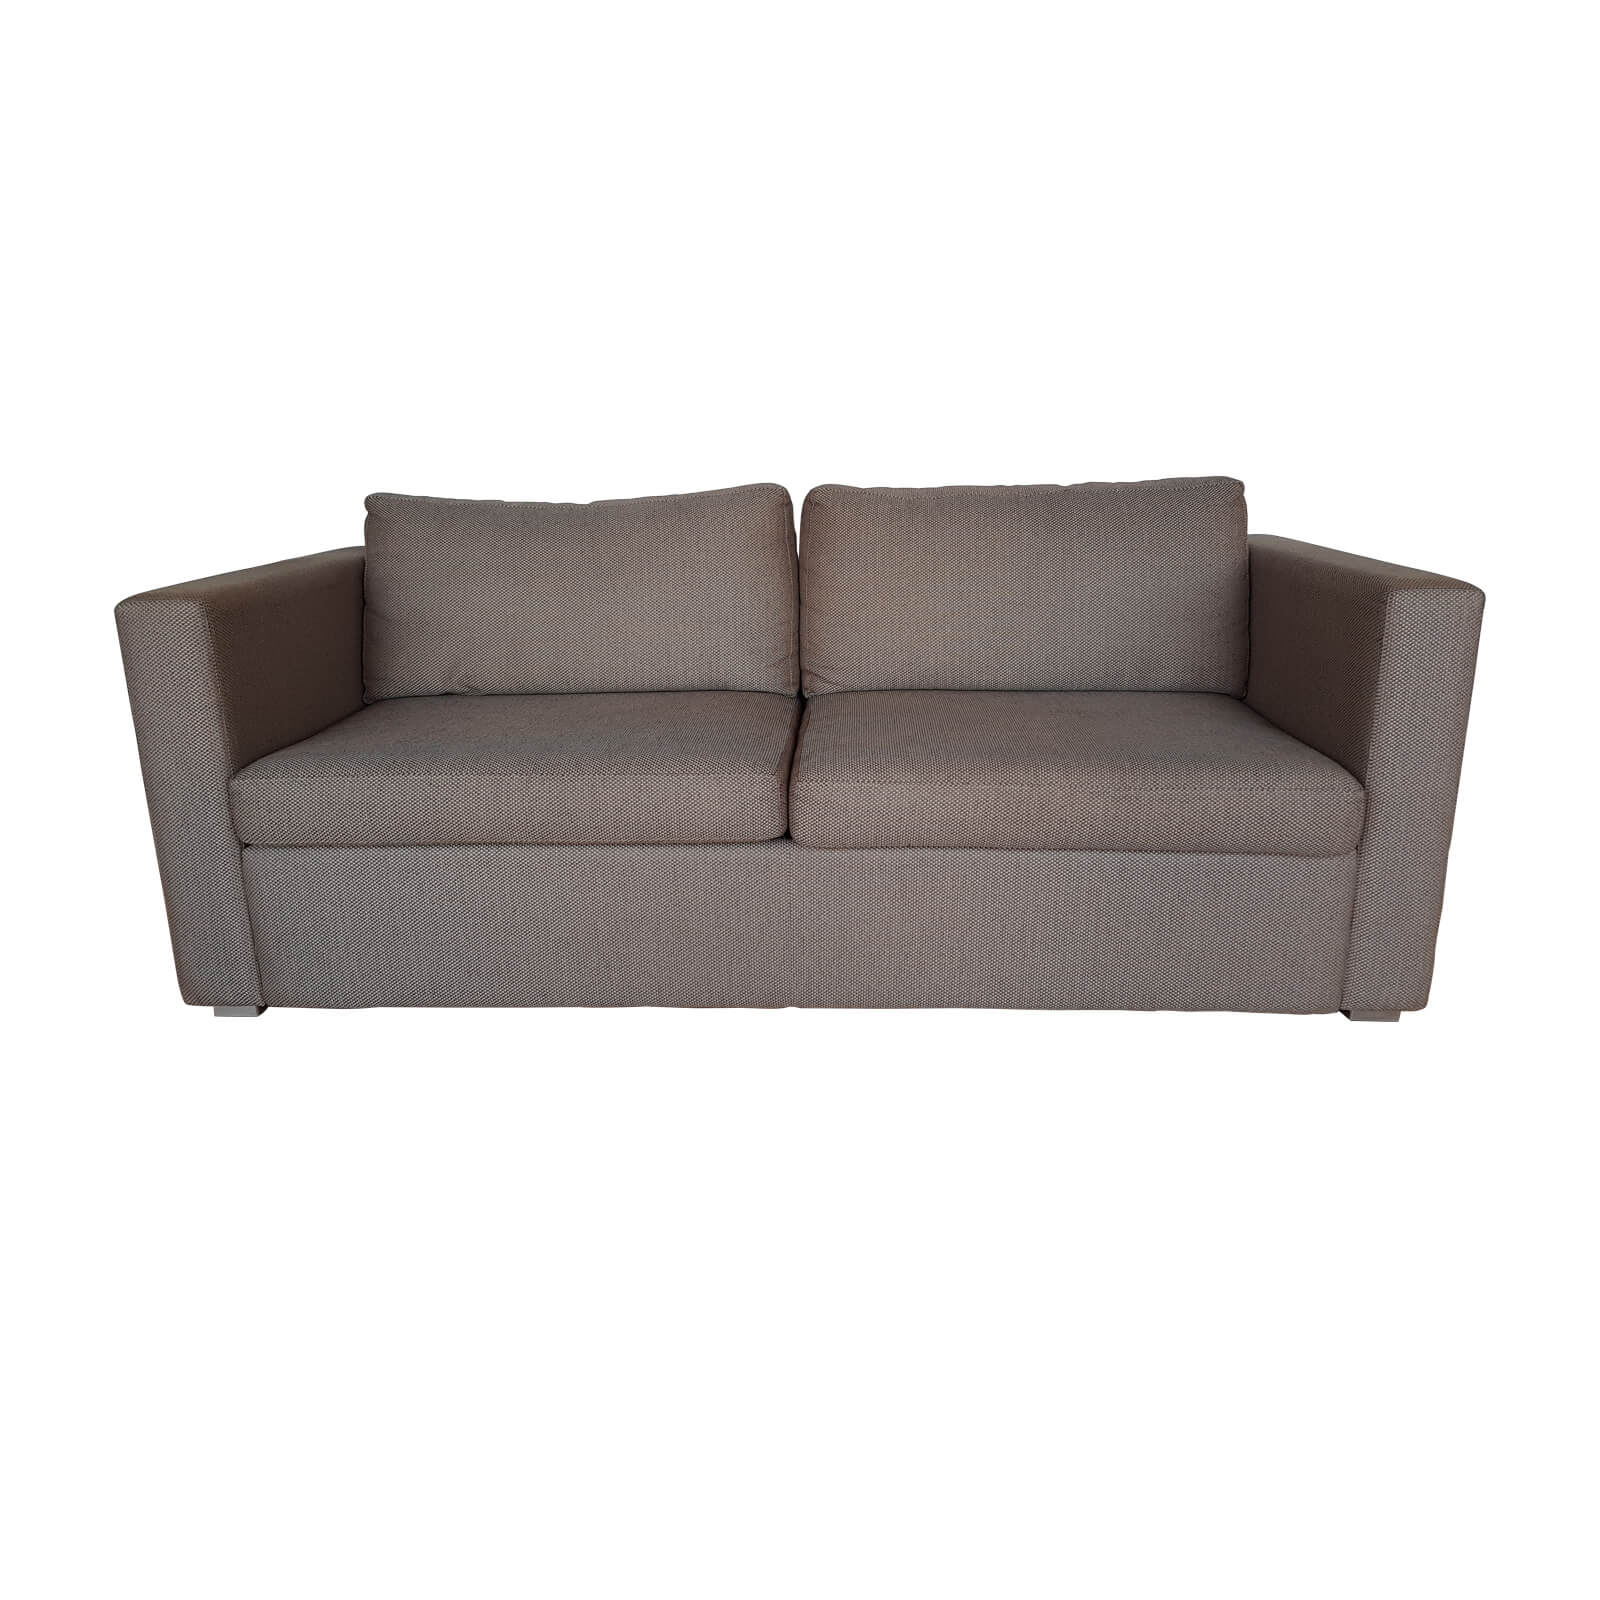 Two Design Lovers Artifex sofabed